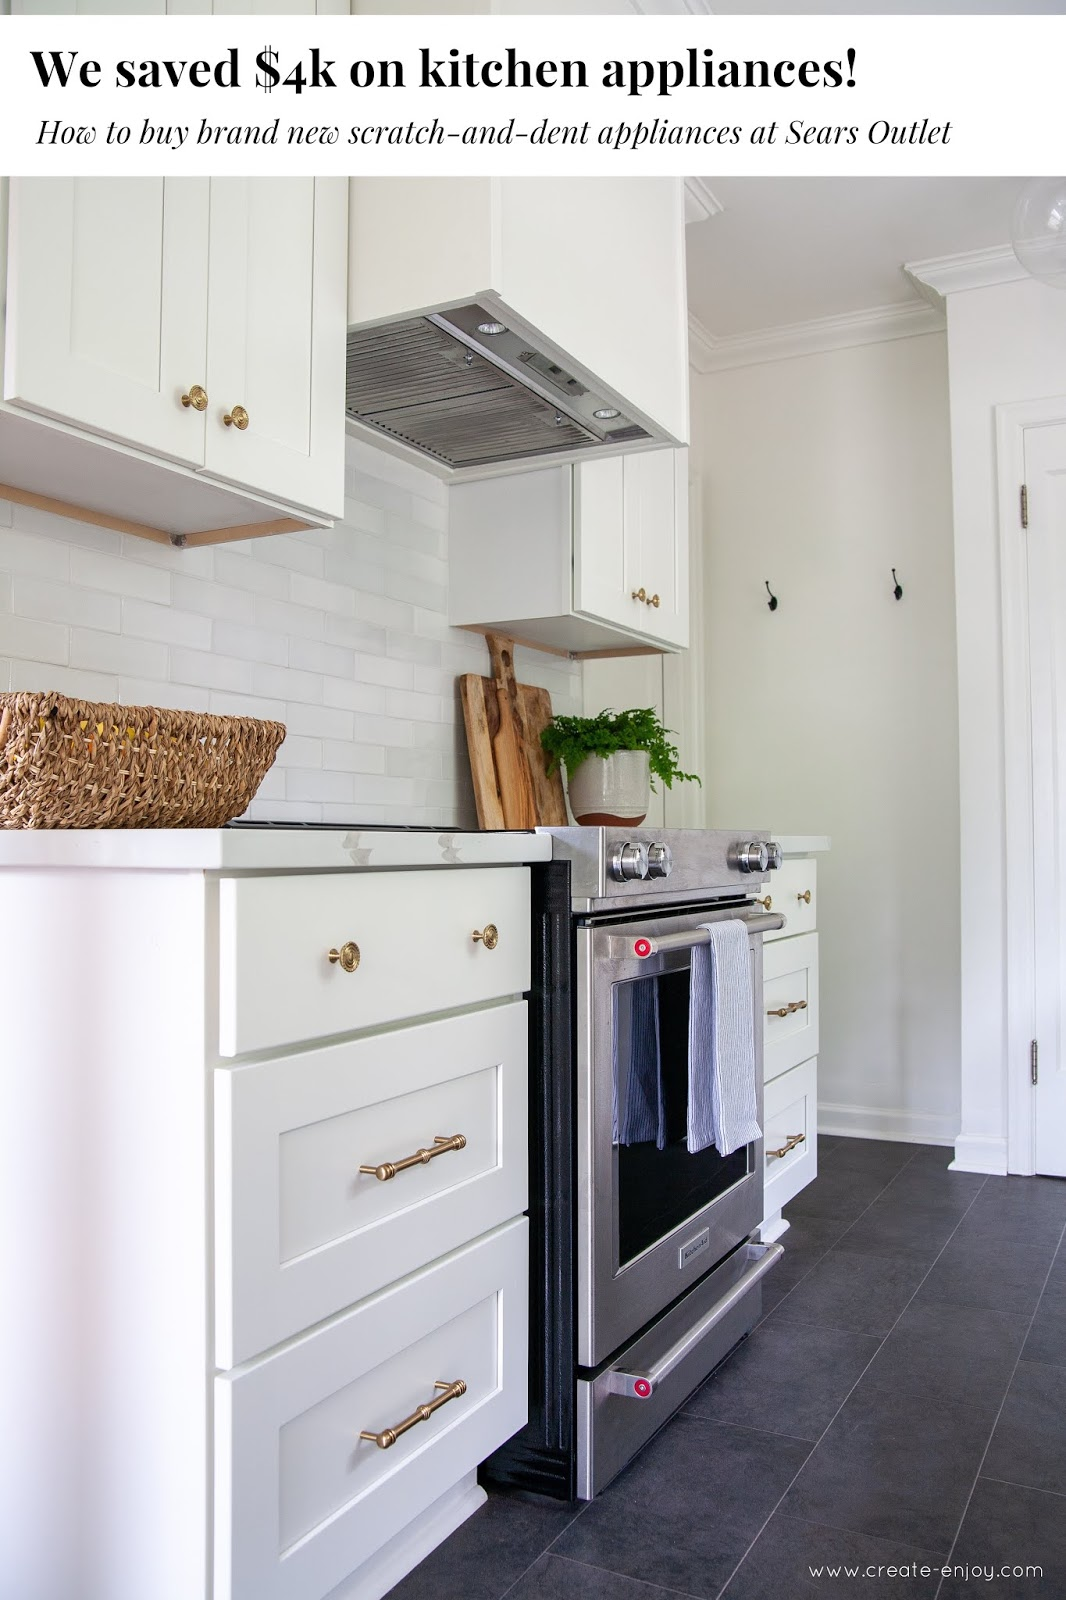 How to save $4k on appliances for a full kitchen reno with ...